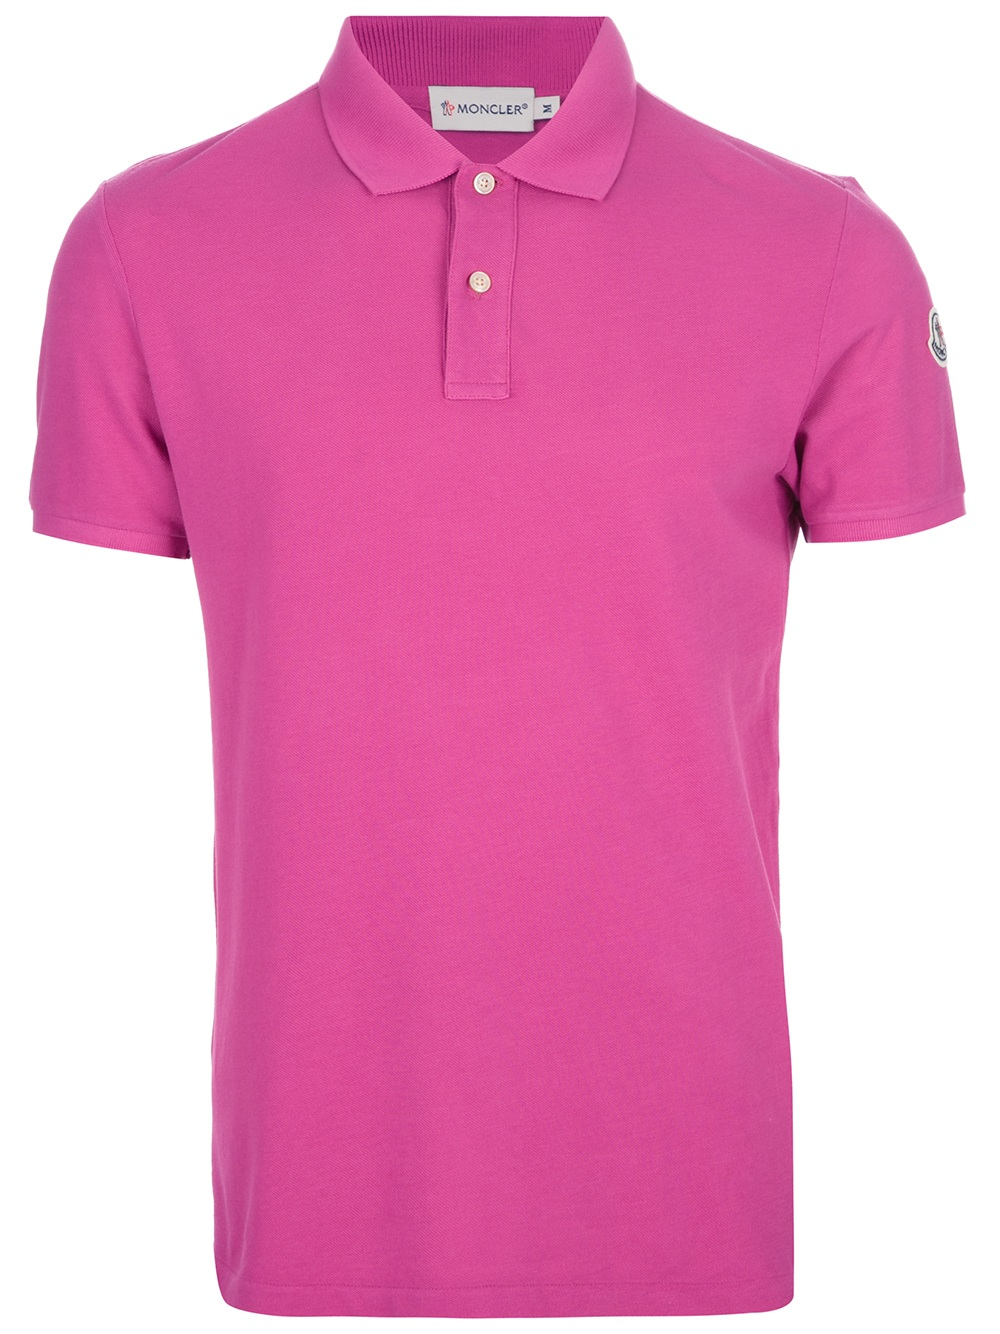 Moncler classic polo shirt in pink for men lyst for Moncler polo shirt sale